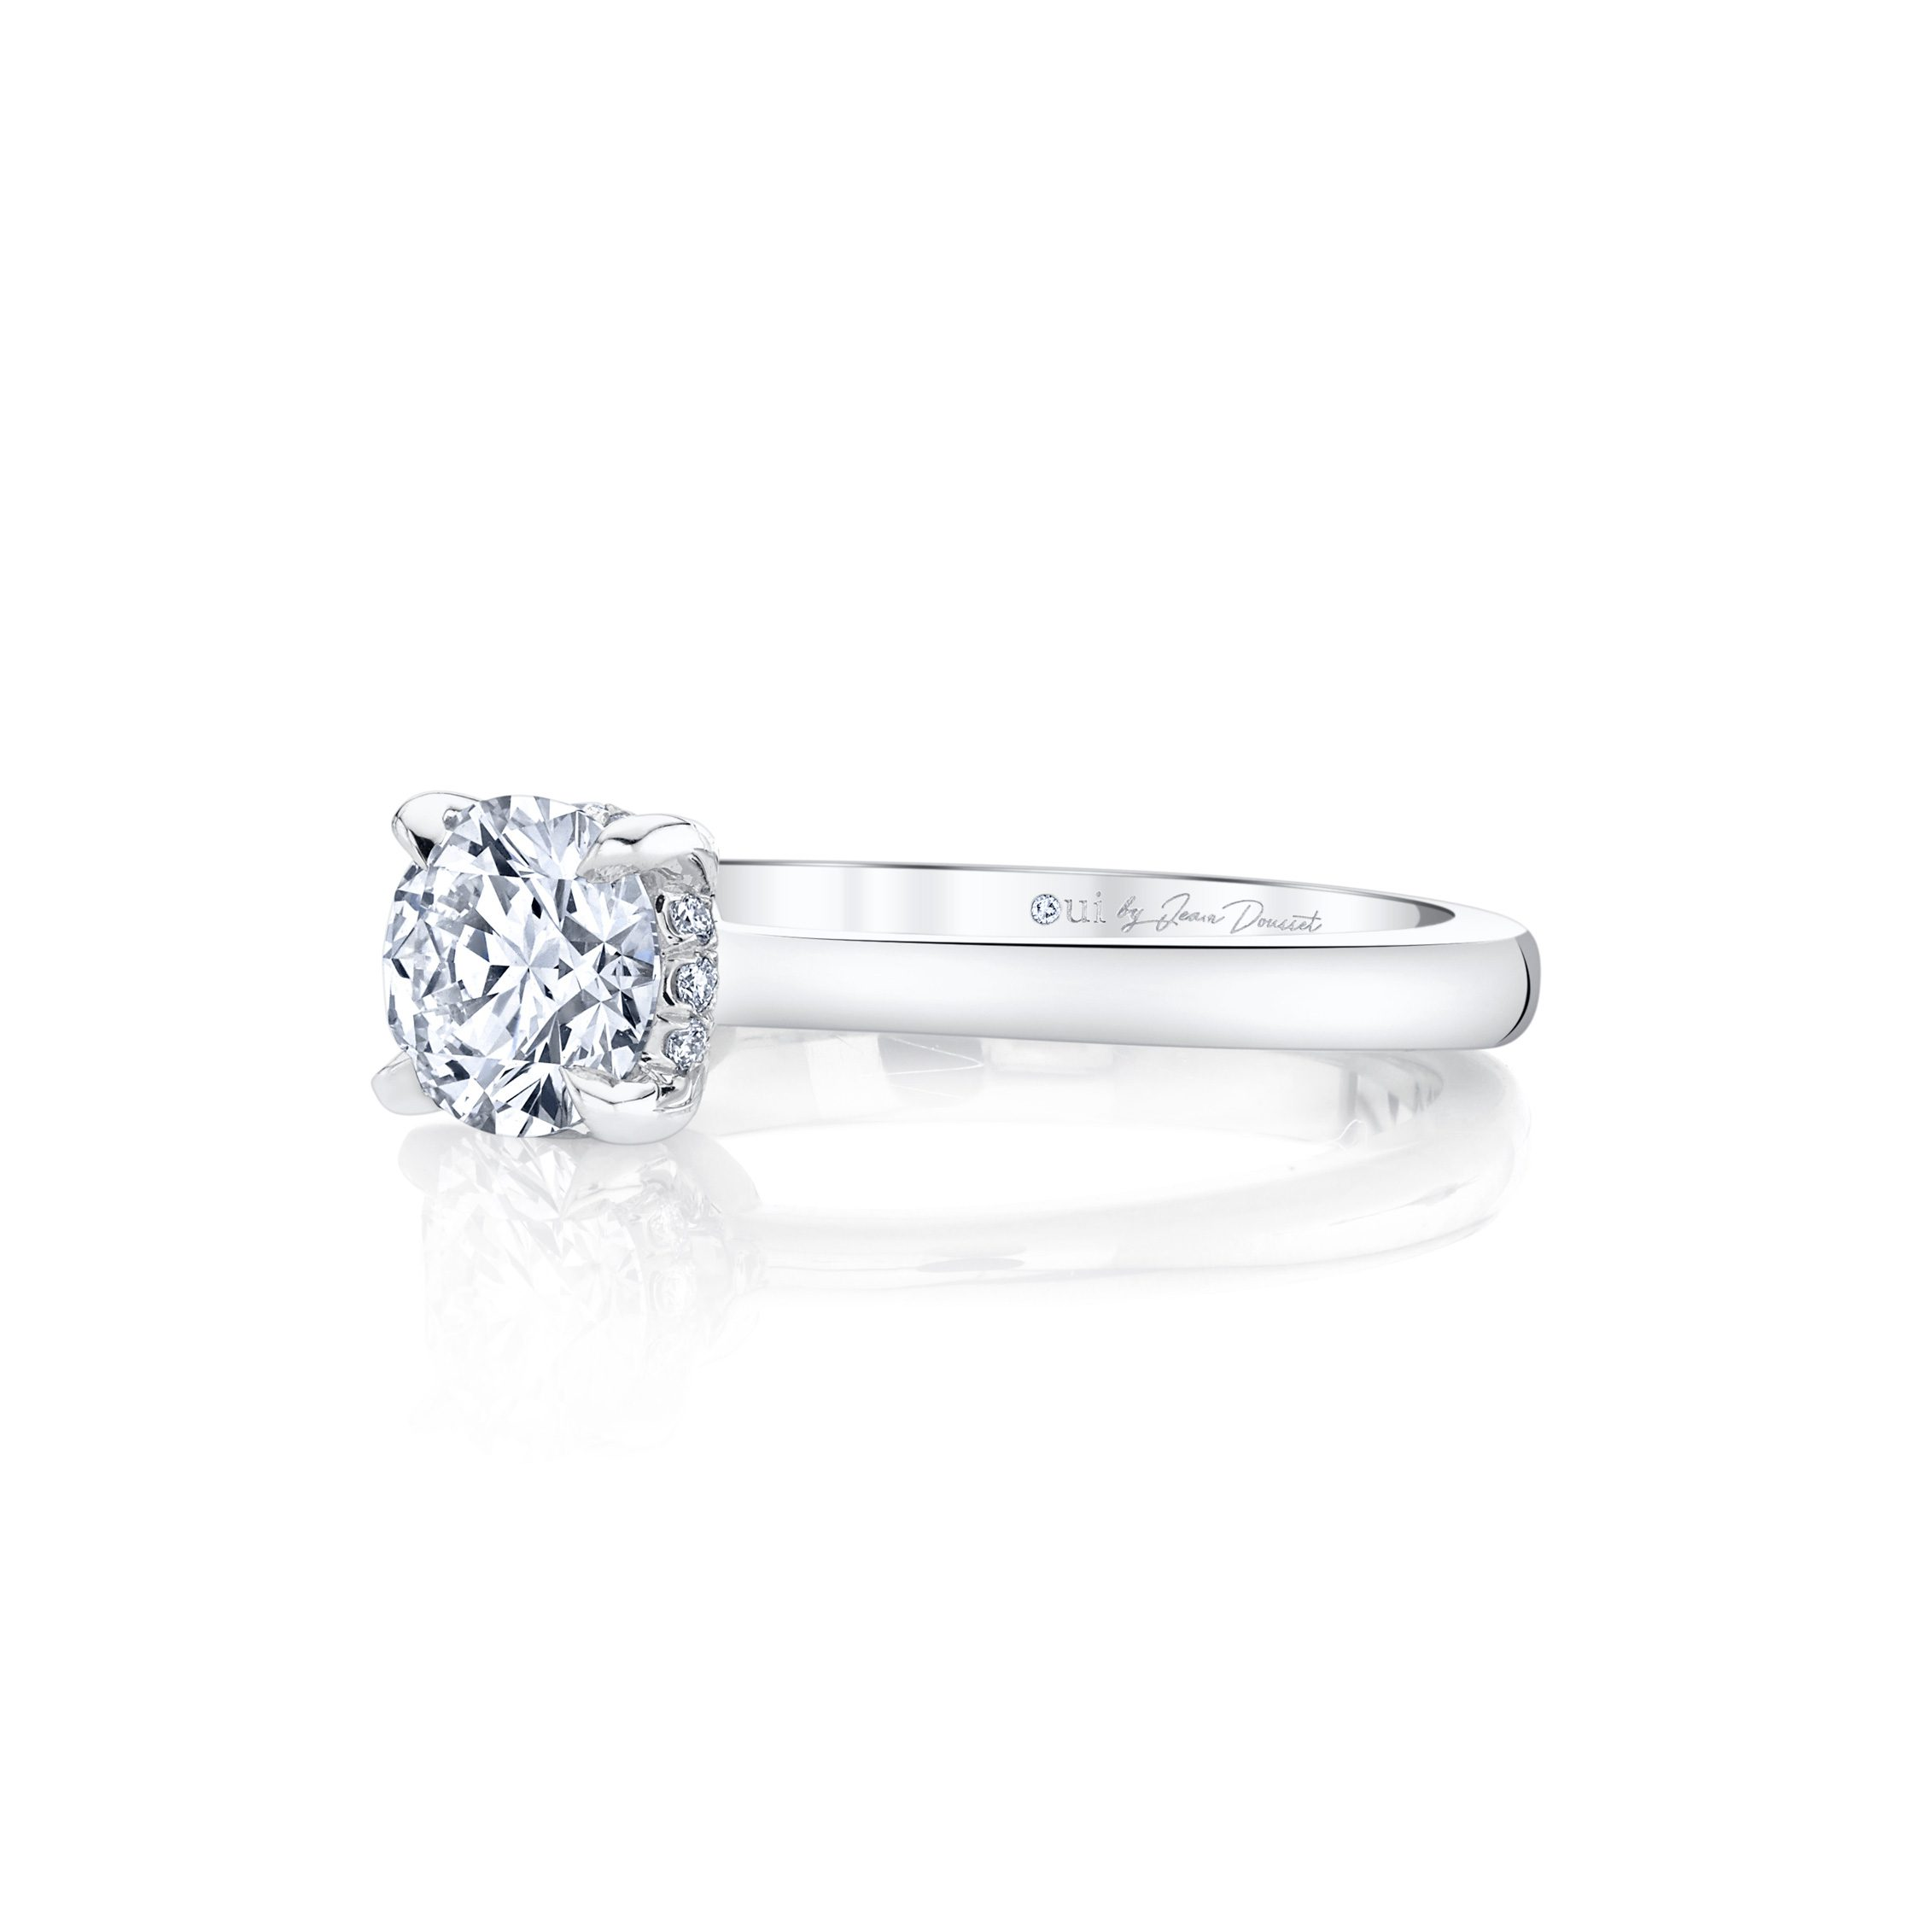 Colette Round Brilliant Solitaire Engagement Ring with a sold band in 18k White Gold Side View by Oui by Jean Dousset